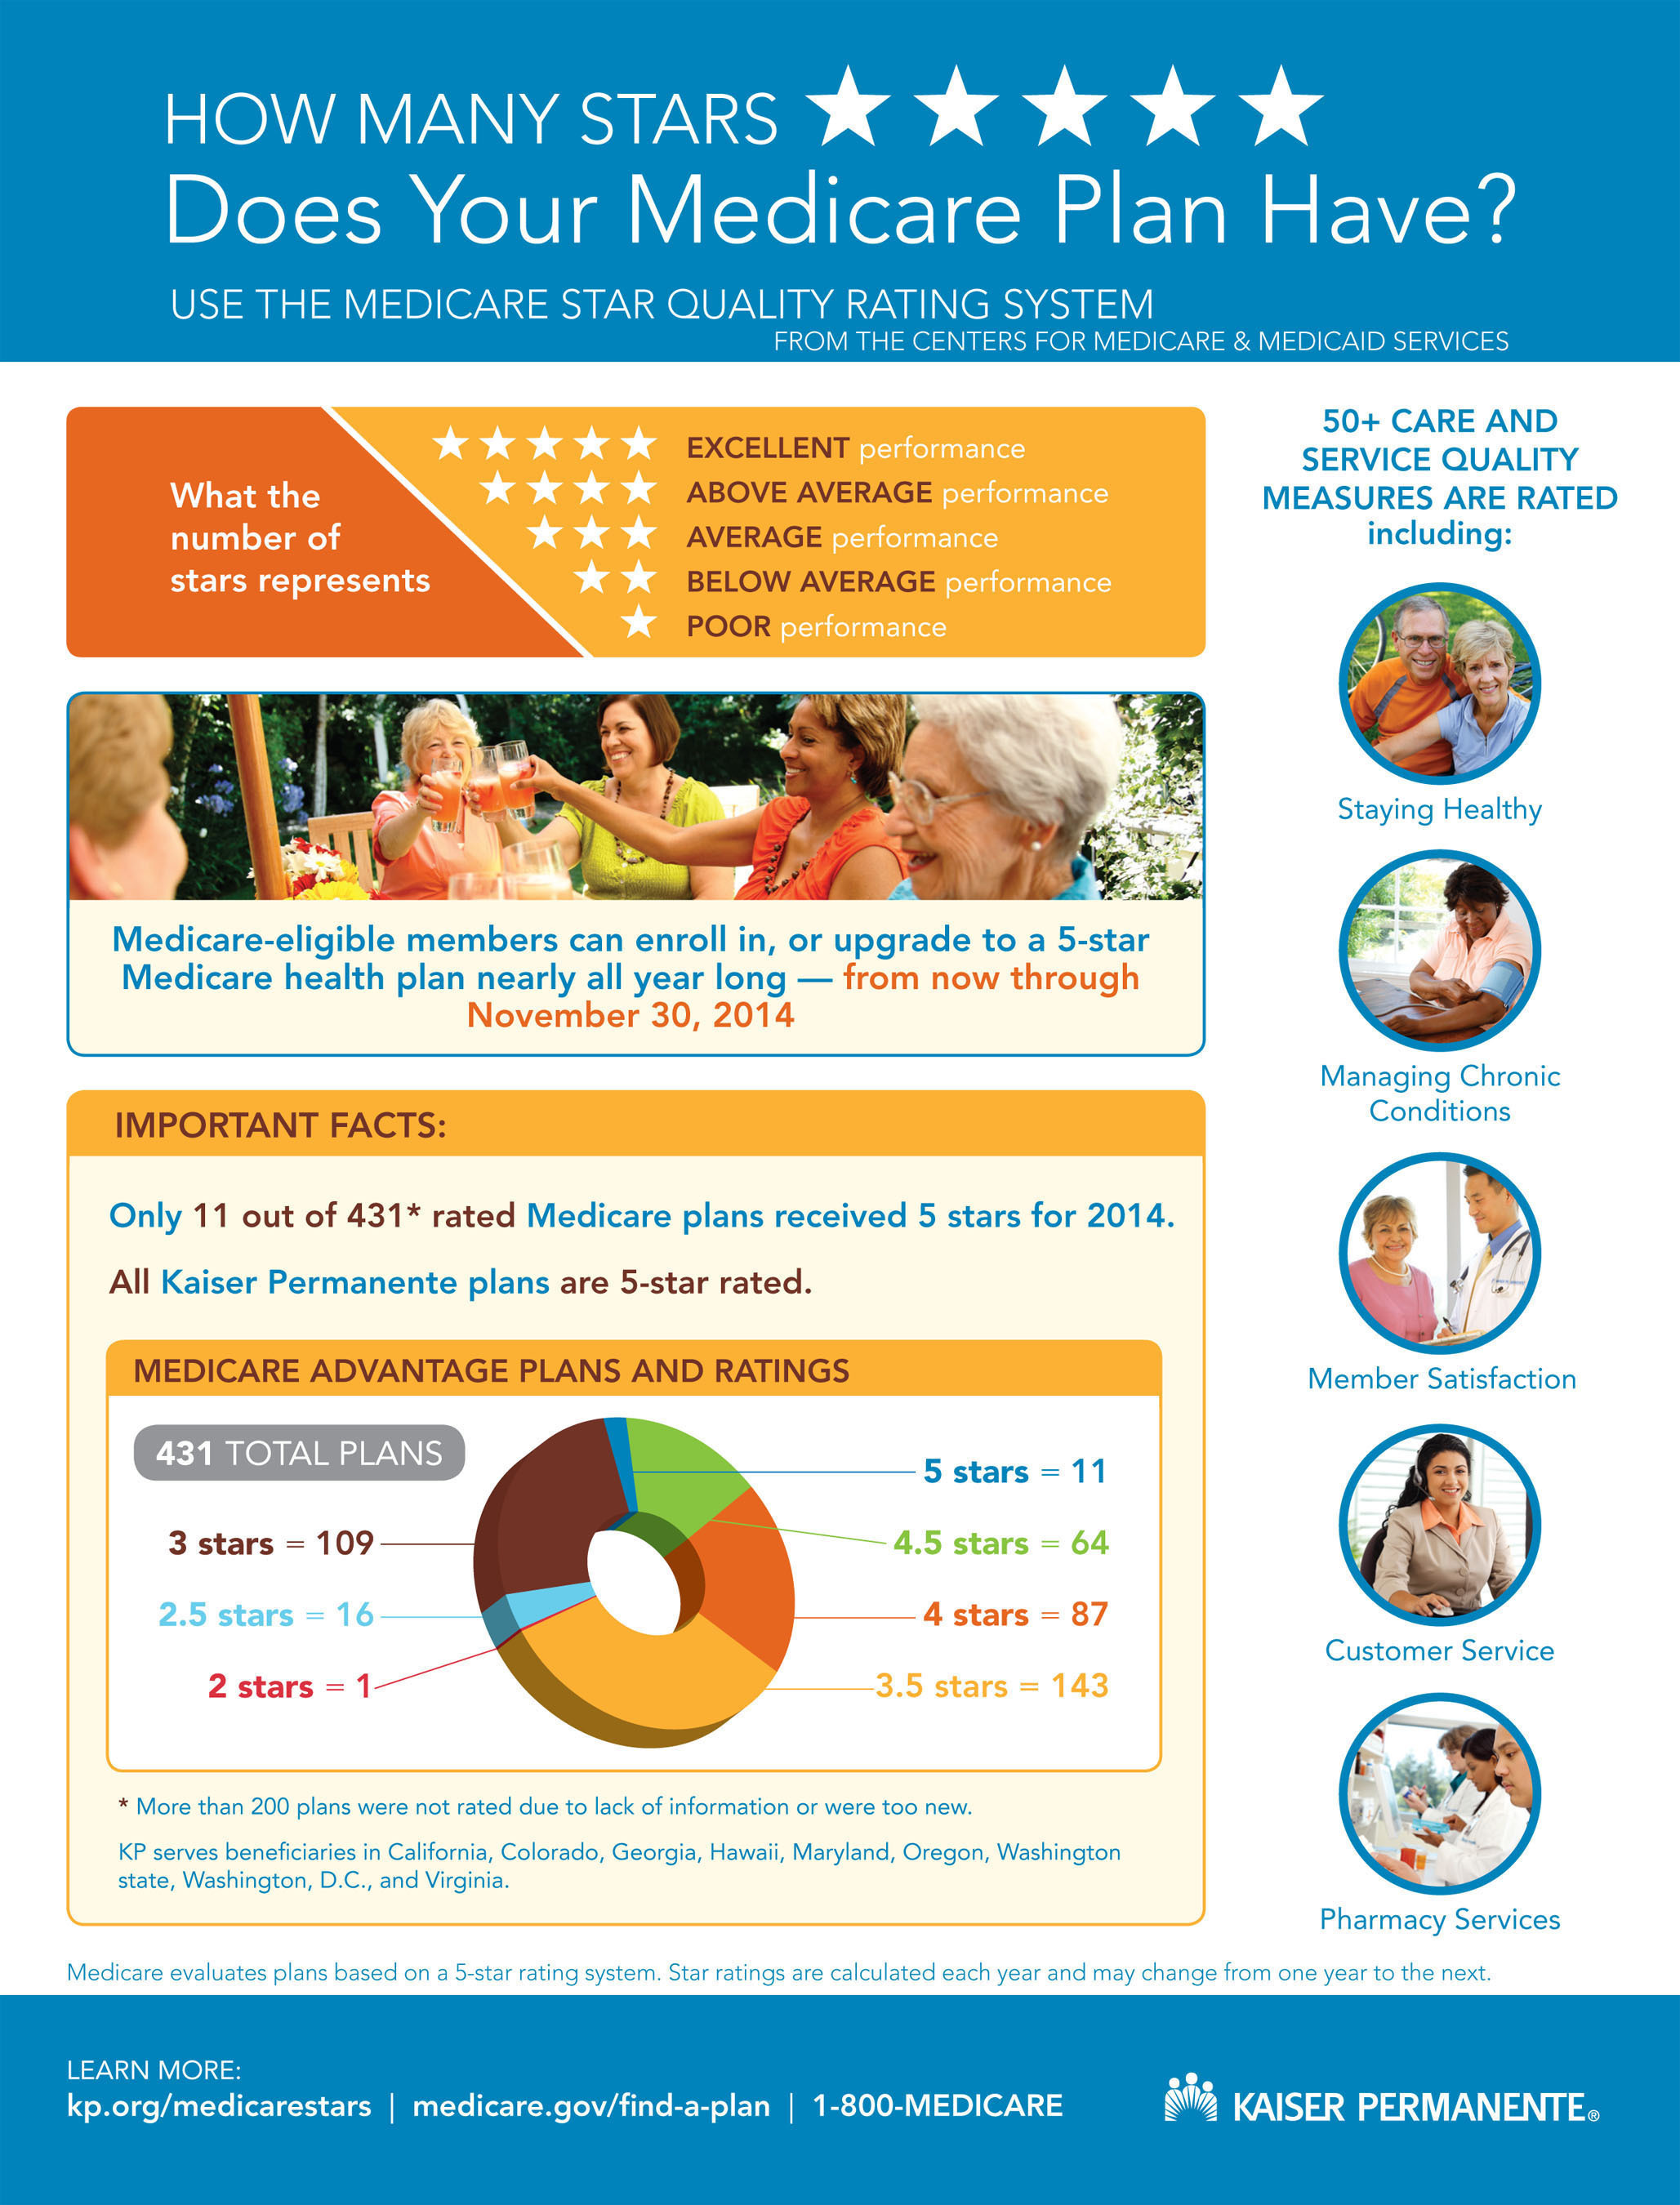 How Many Stars Does Your Medicare Plan Have? (PRNewsFoto/Kaiser Permanente) (PRNewsFoto/KAISER PERMANENTE)